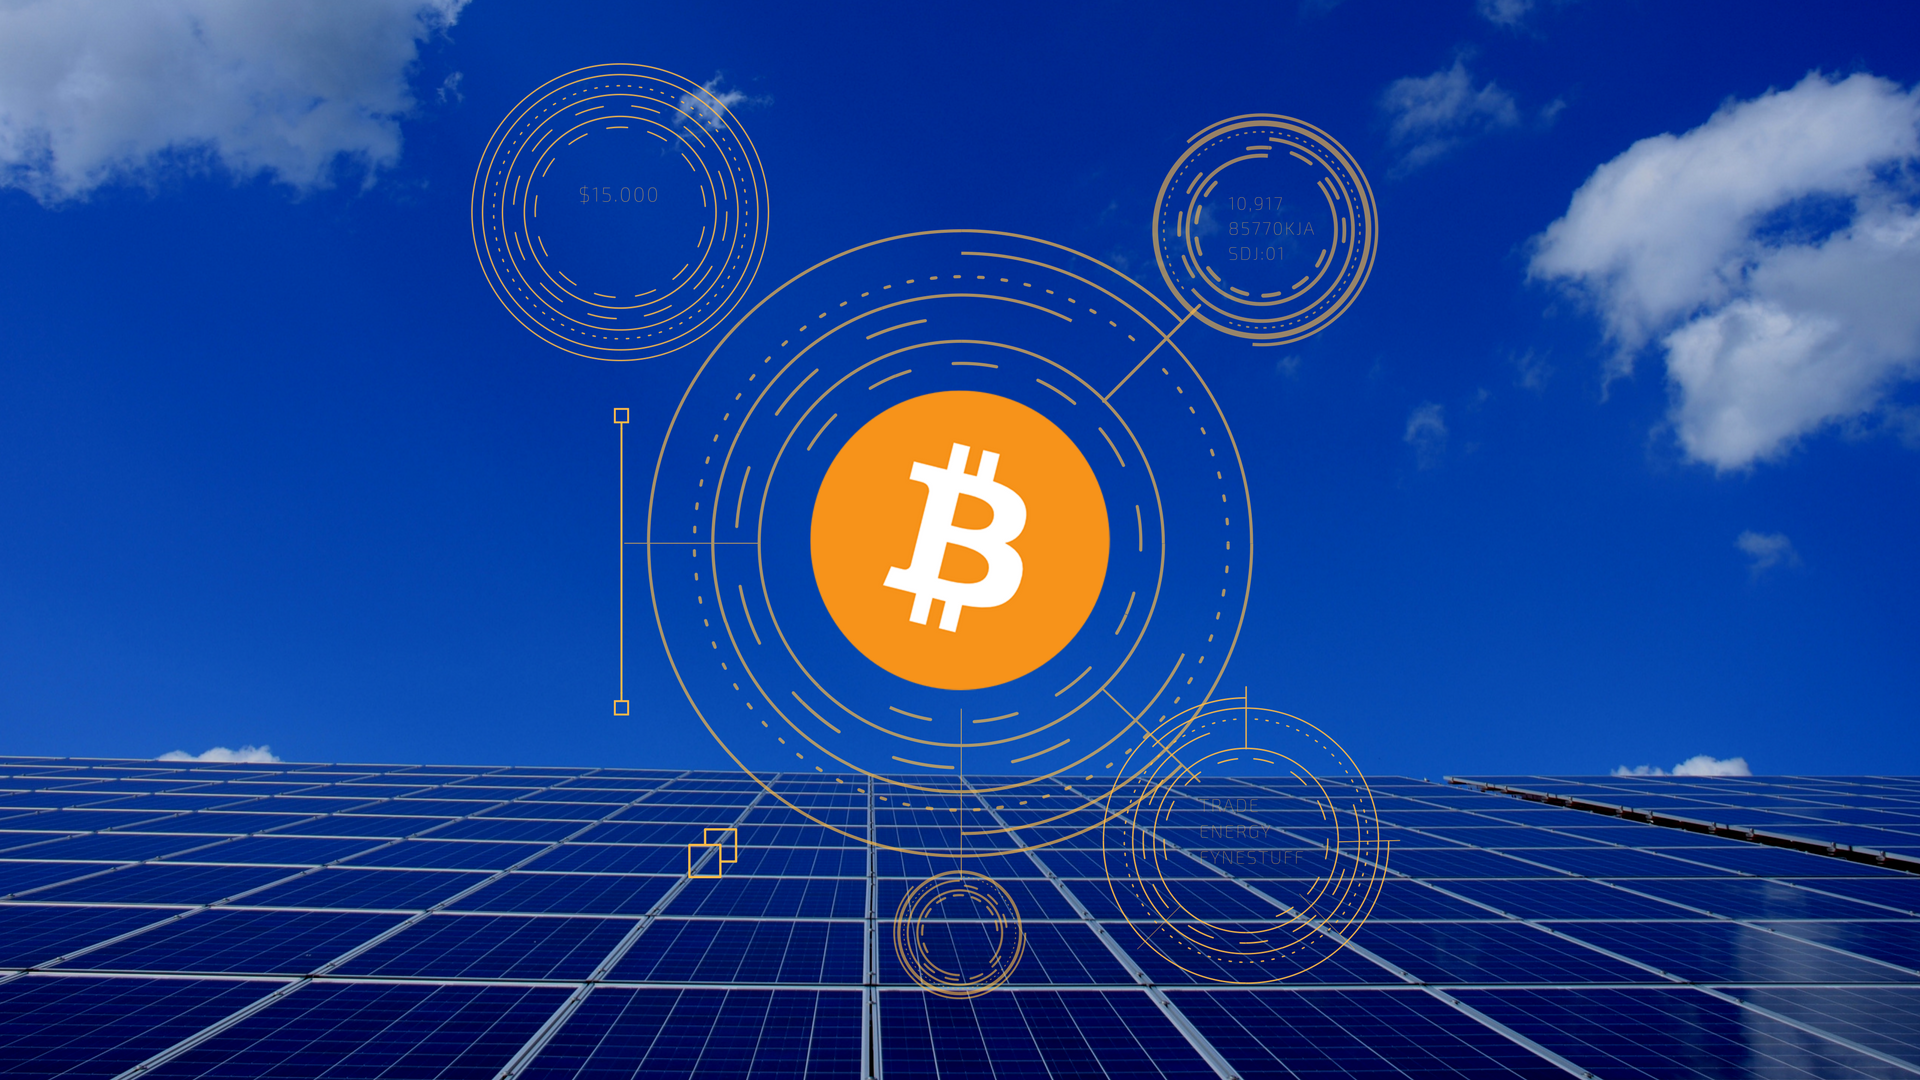 solar power for cryptocurrency mining